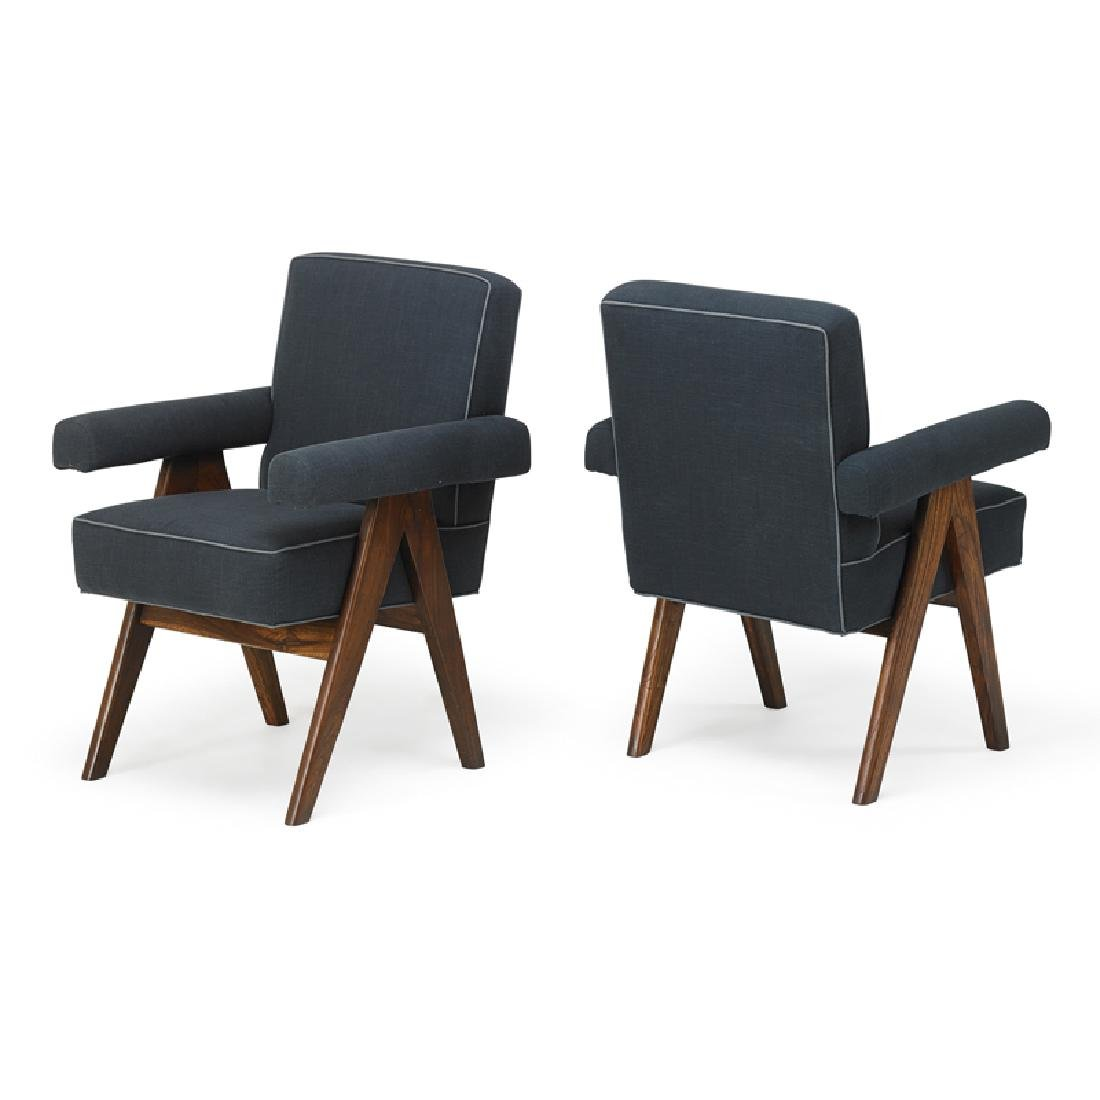 PIERRE JEANNERET Pair of armchairs - 2